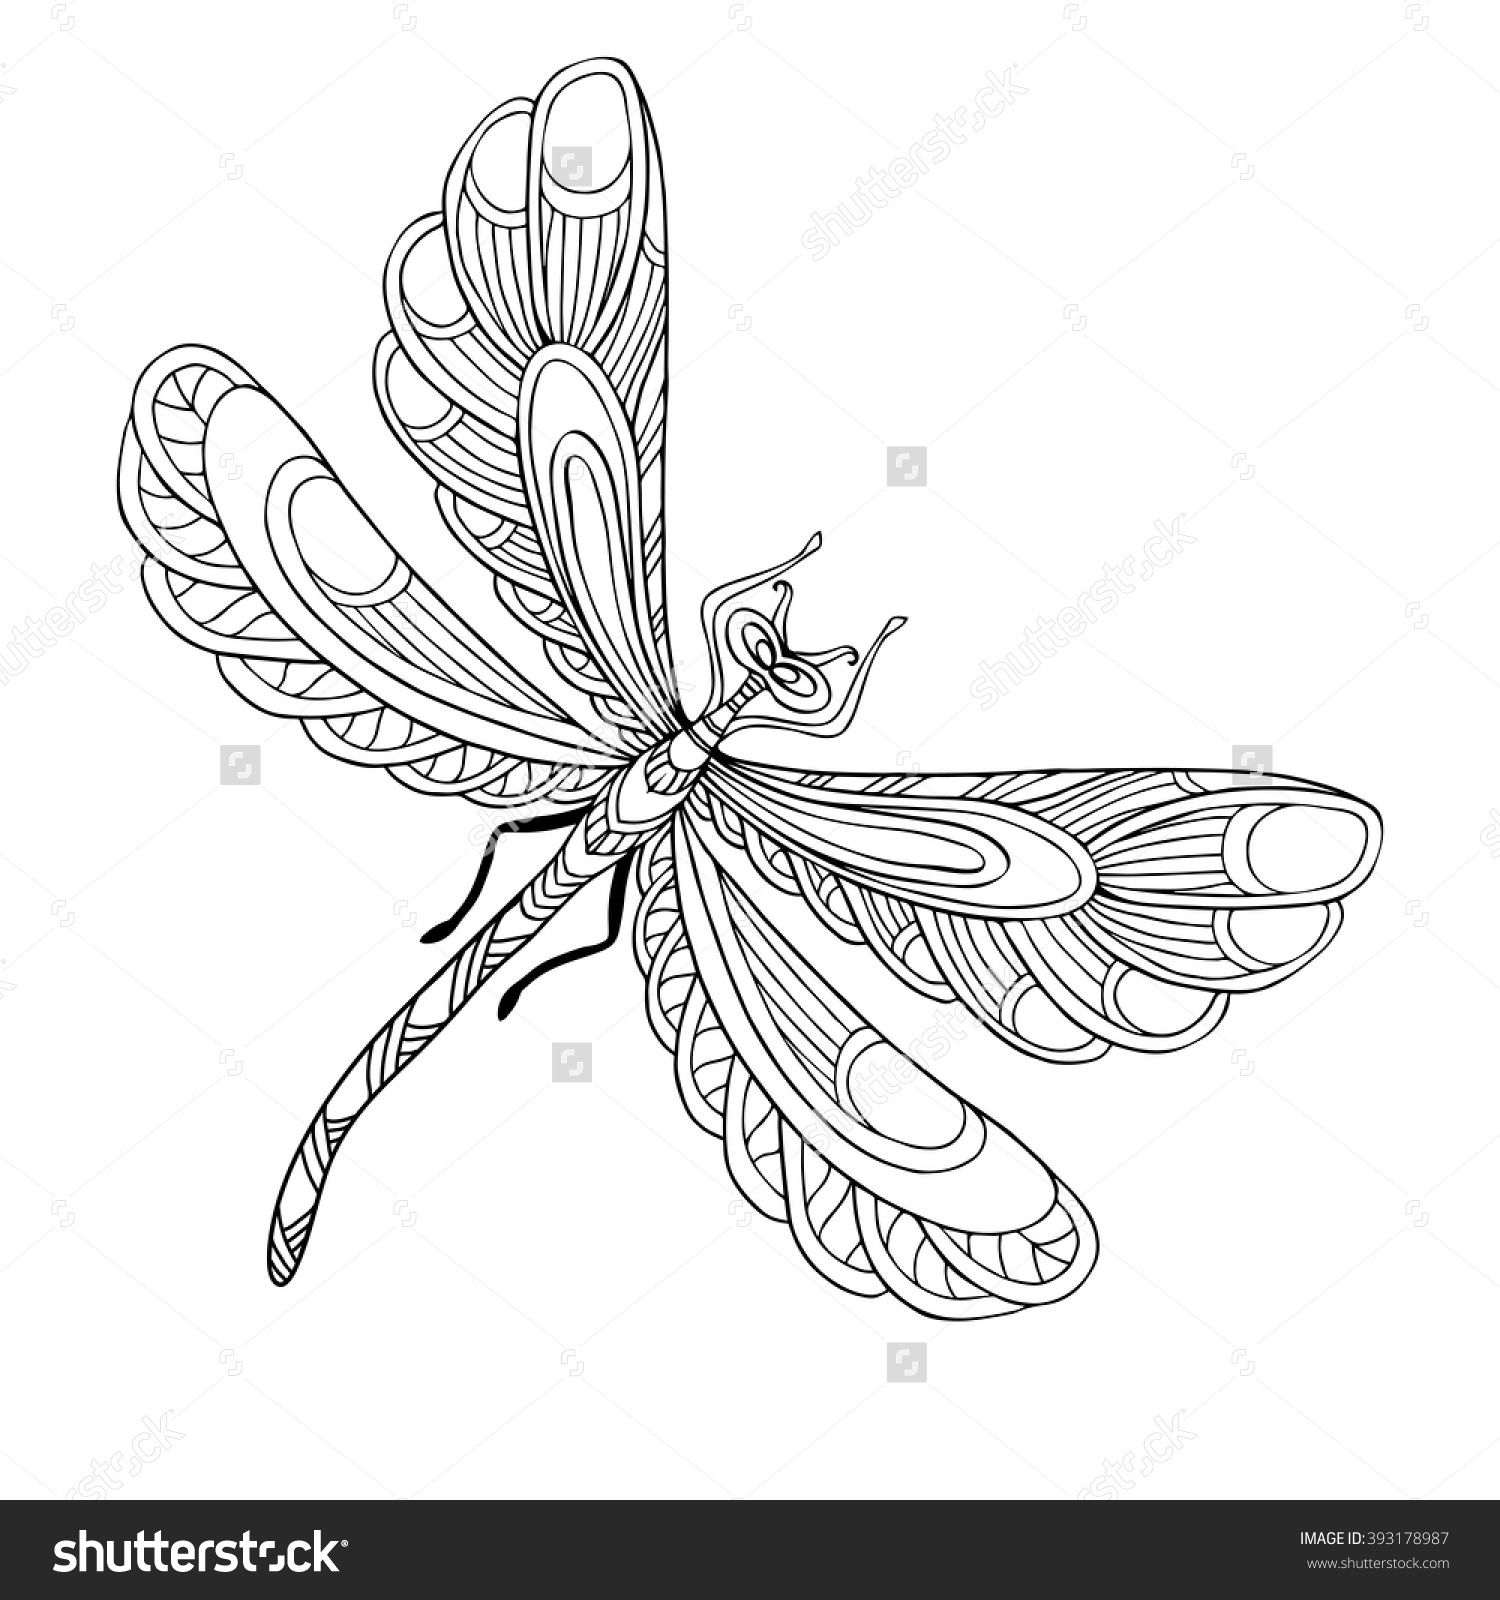 Adult Dragonfly Coloring Pages | Coloring Pages. | Pinterest ...